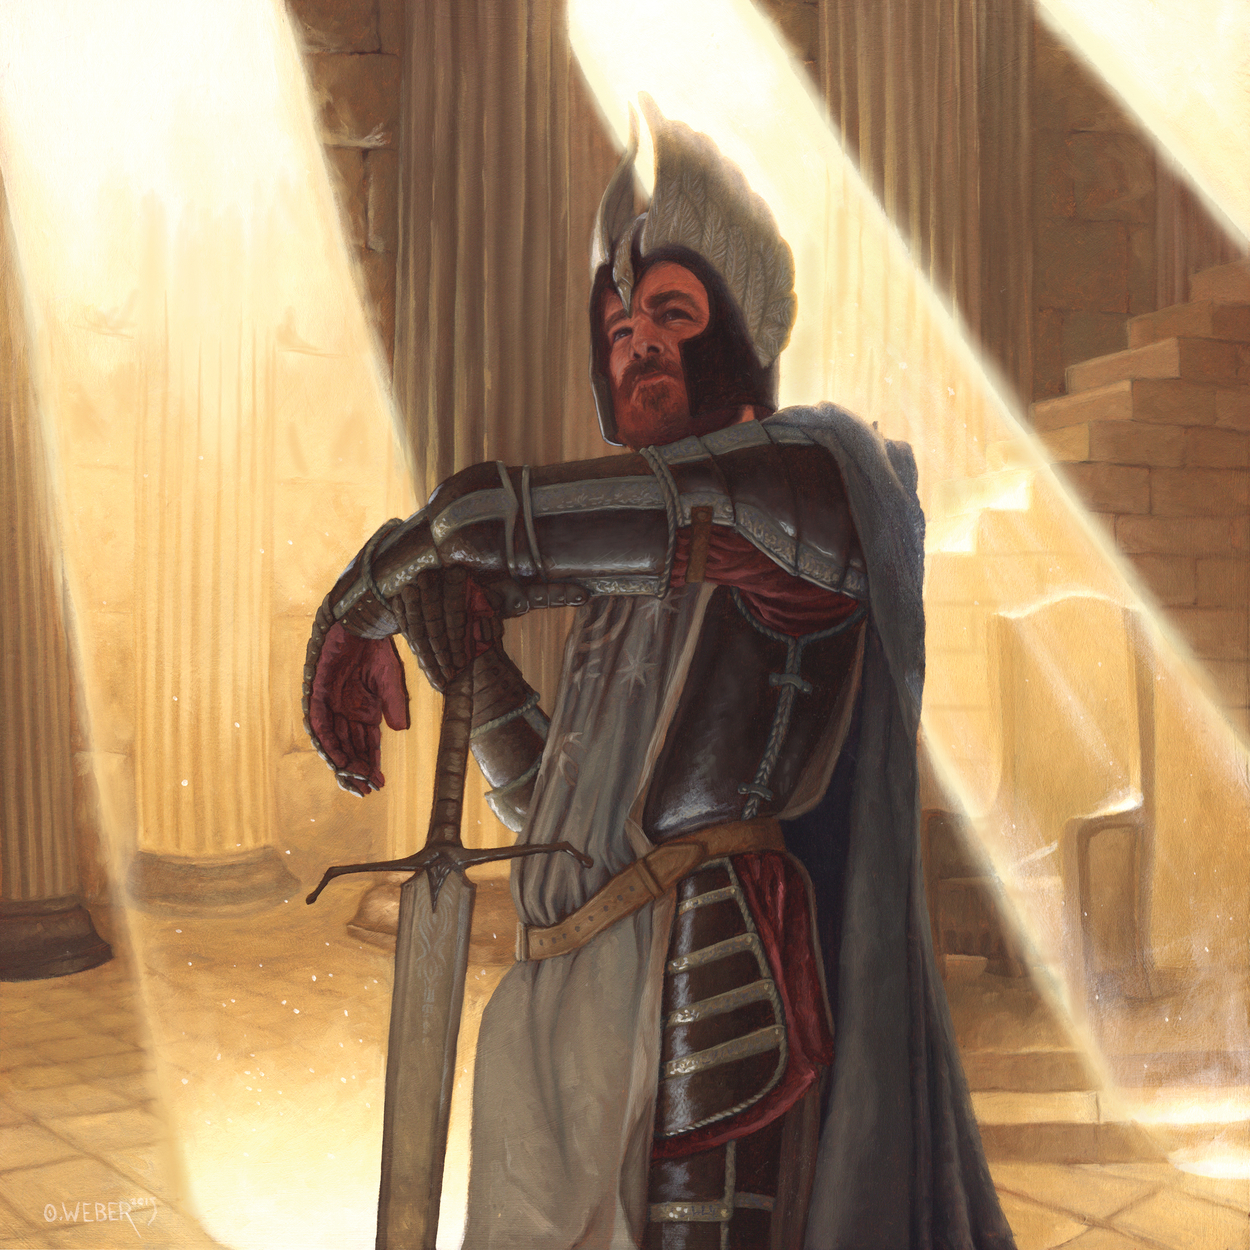 Knight of the White Tower Artwork by Owen Weber